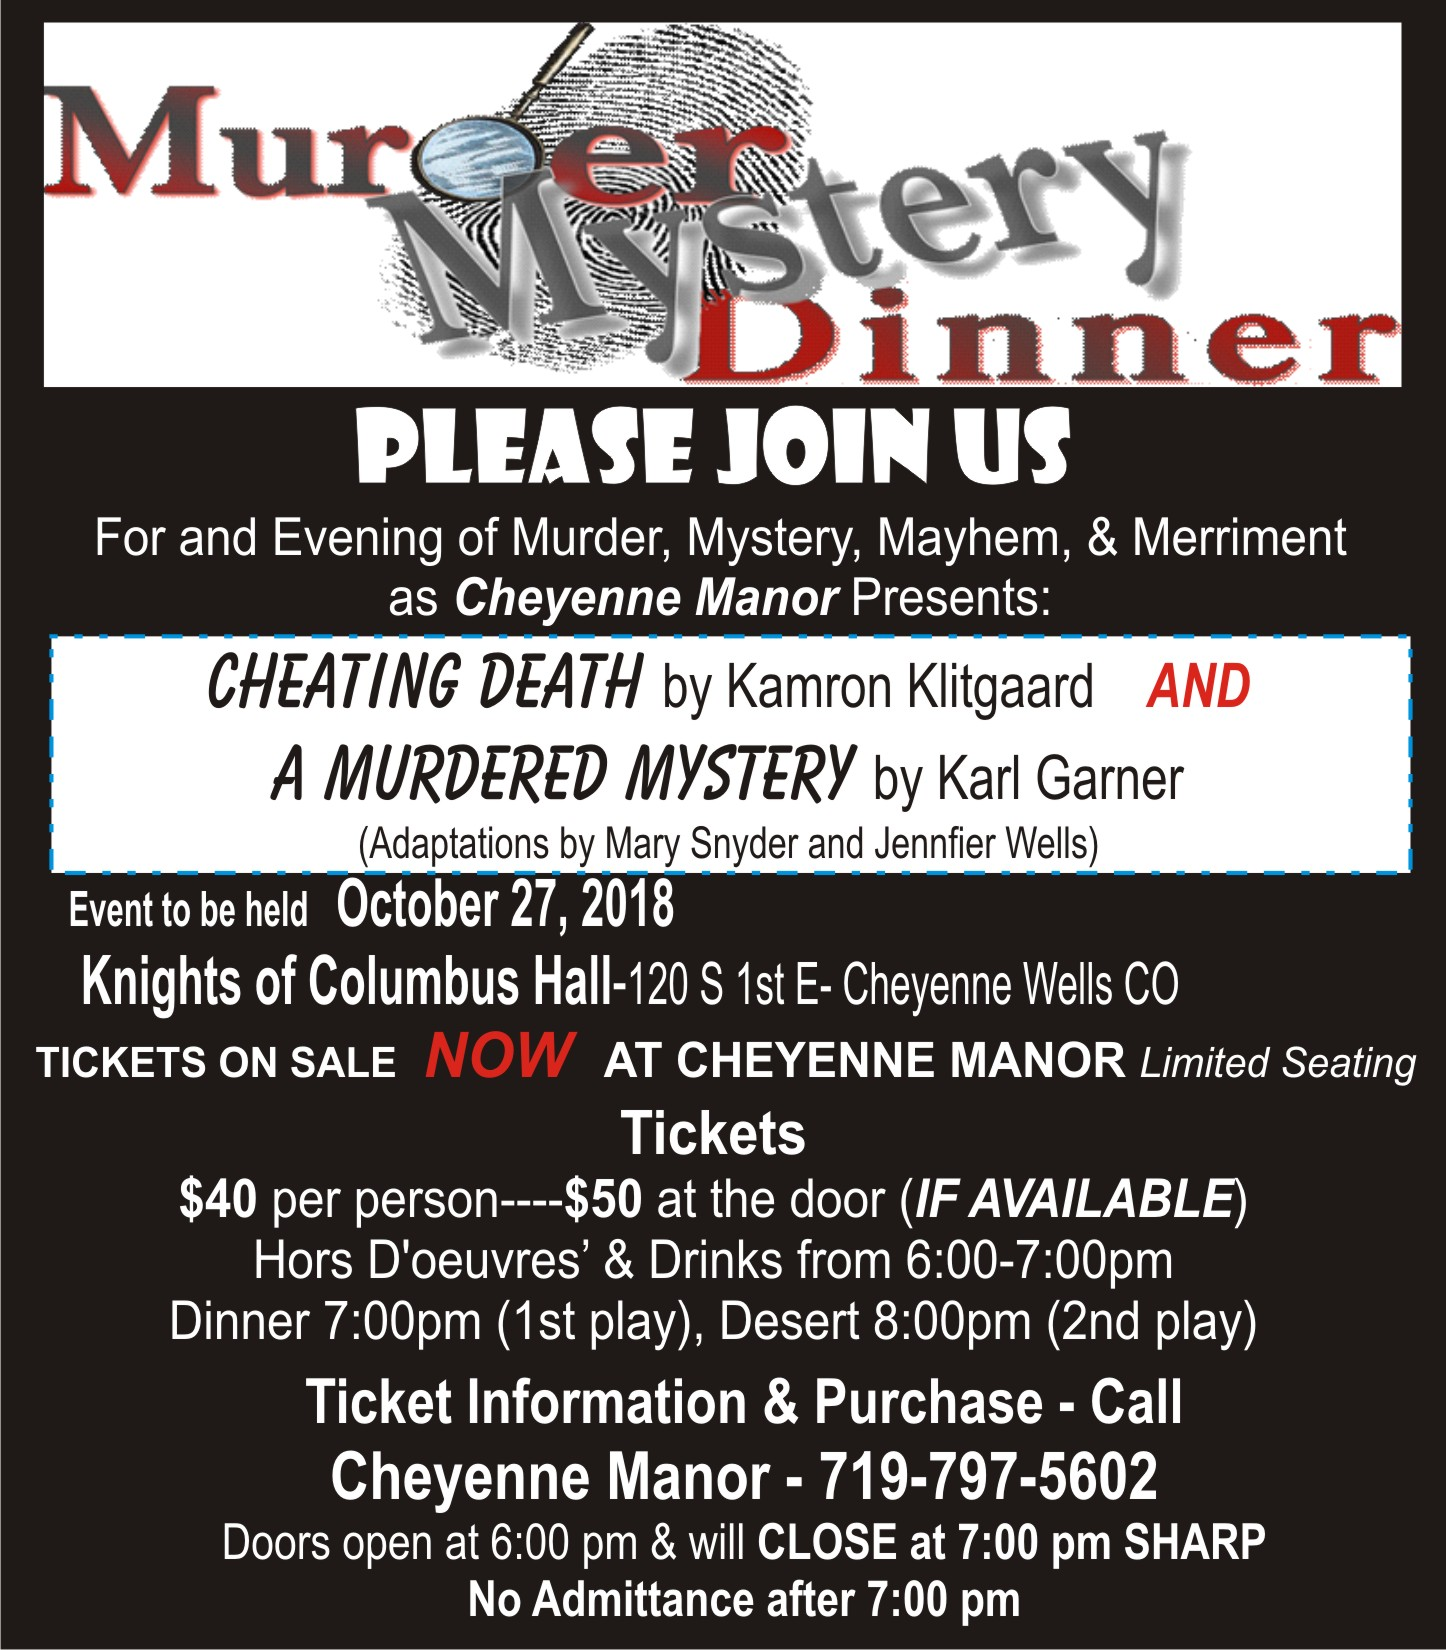 AD 2018 Murder Mystery Dinner at Cheyenne Manor